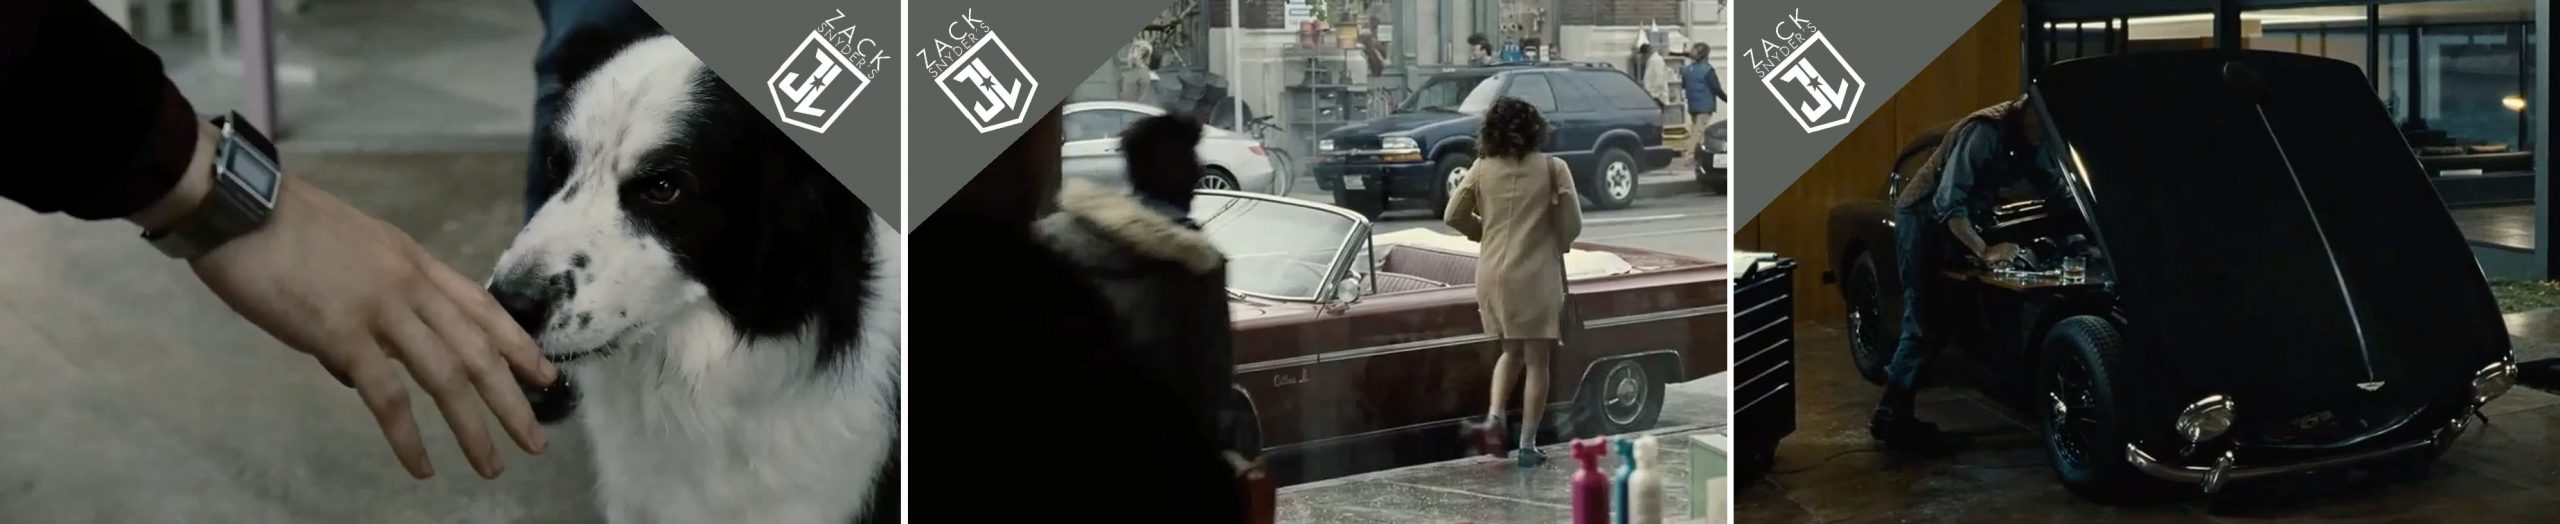 Casio, Oldsmobile and Aston Martin product placements in Zack Snyder's Justice League